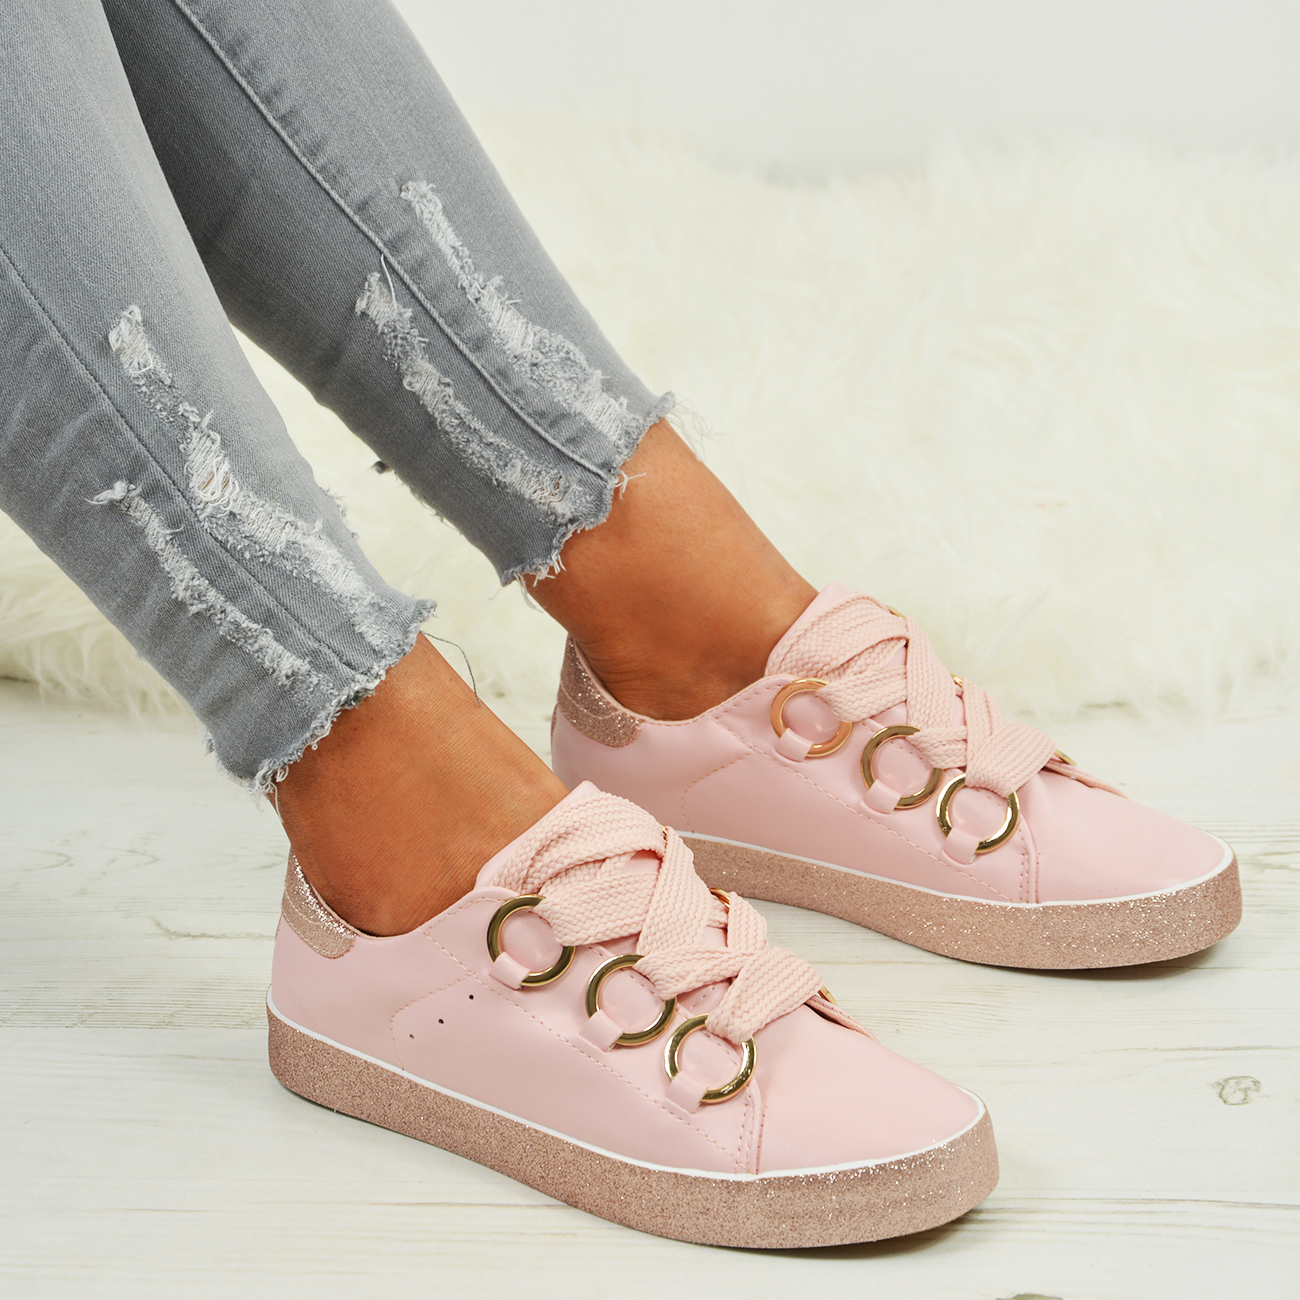 LADIES-WOMENS-GLITTER-SNEAKERS-SPARKLE-TRAINERS-LACE-UP-PLIMSOLL-PUMPS-SHOES thumbnail 12